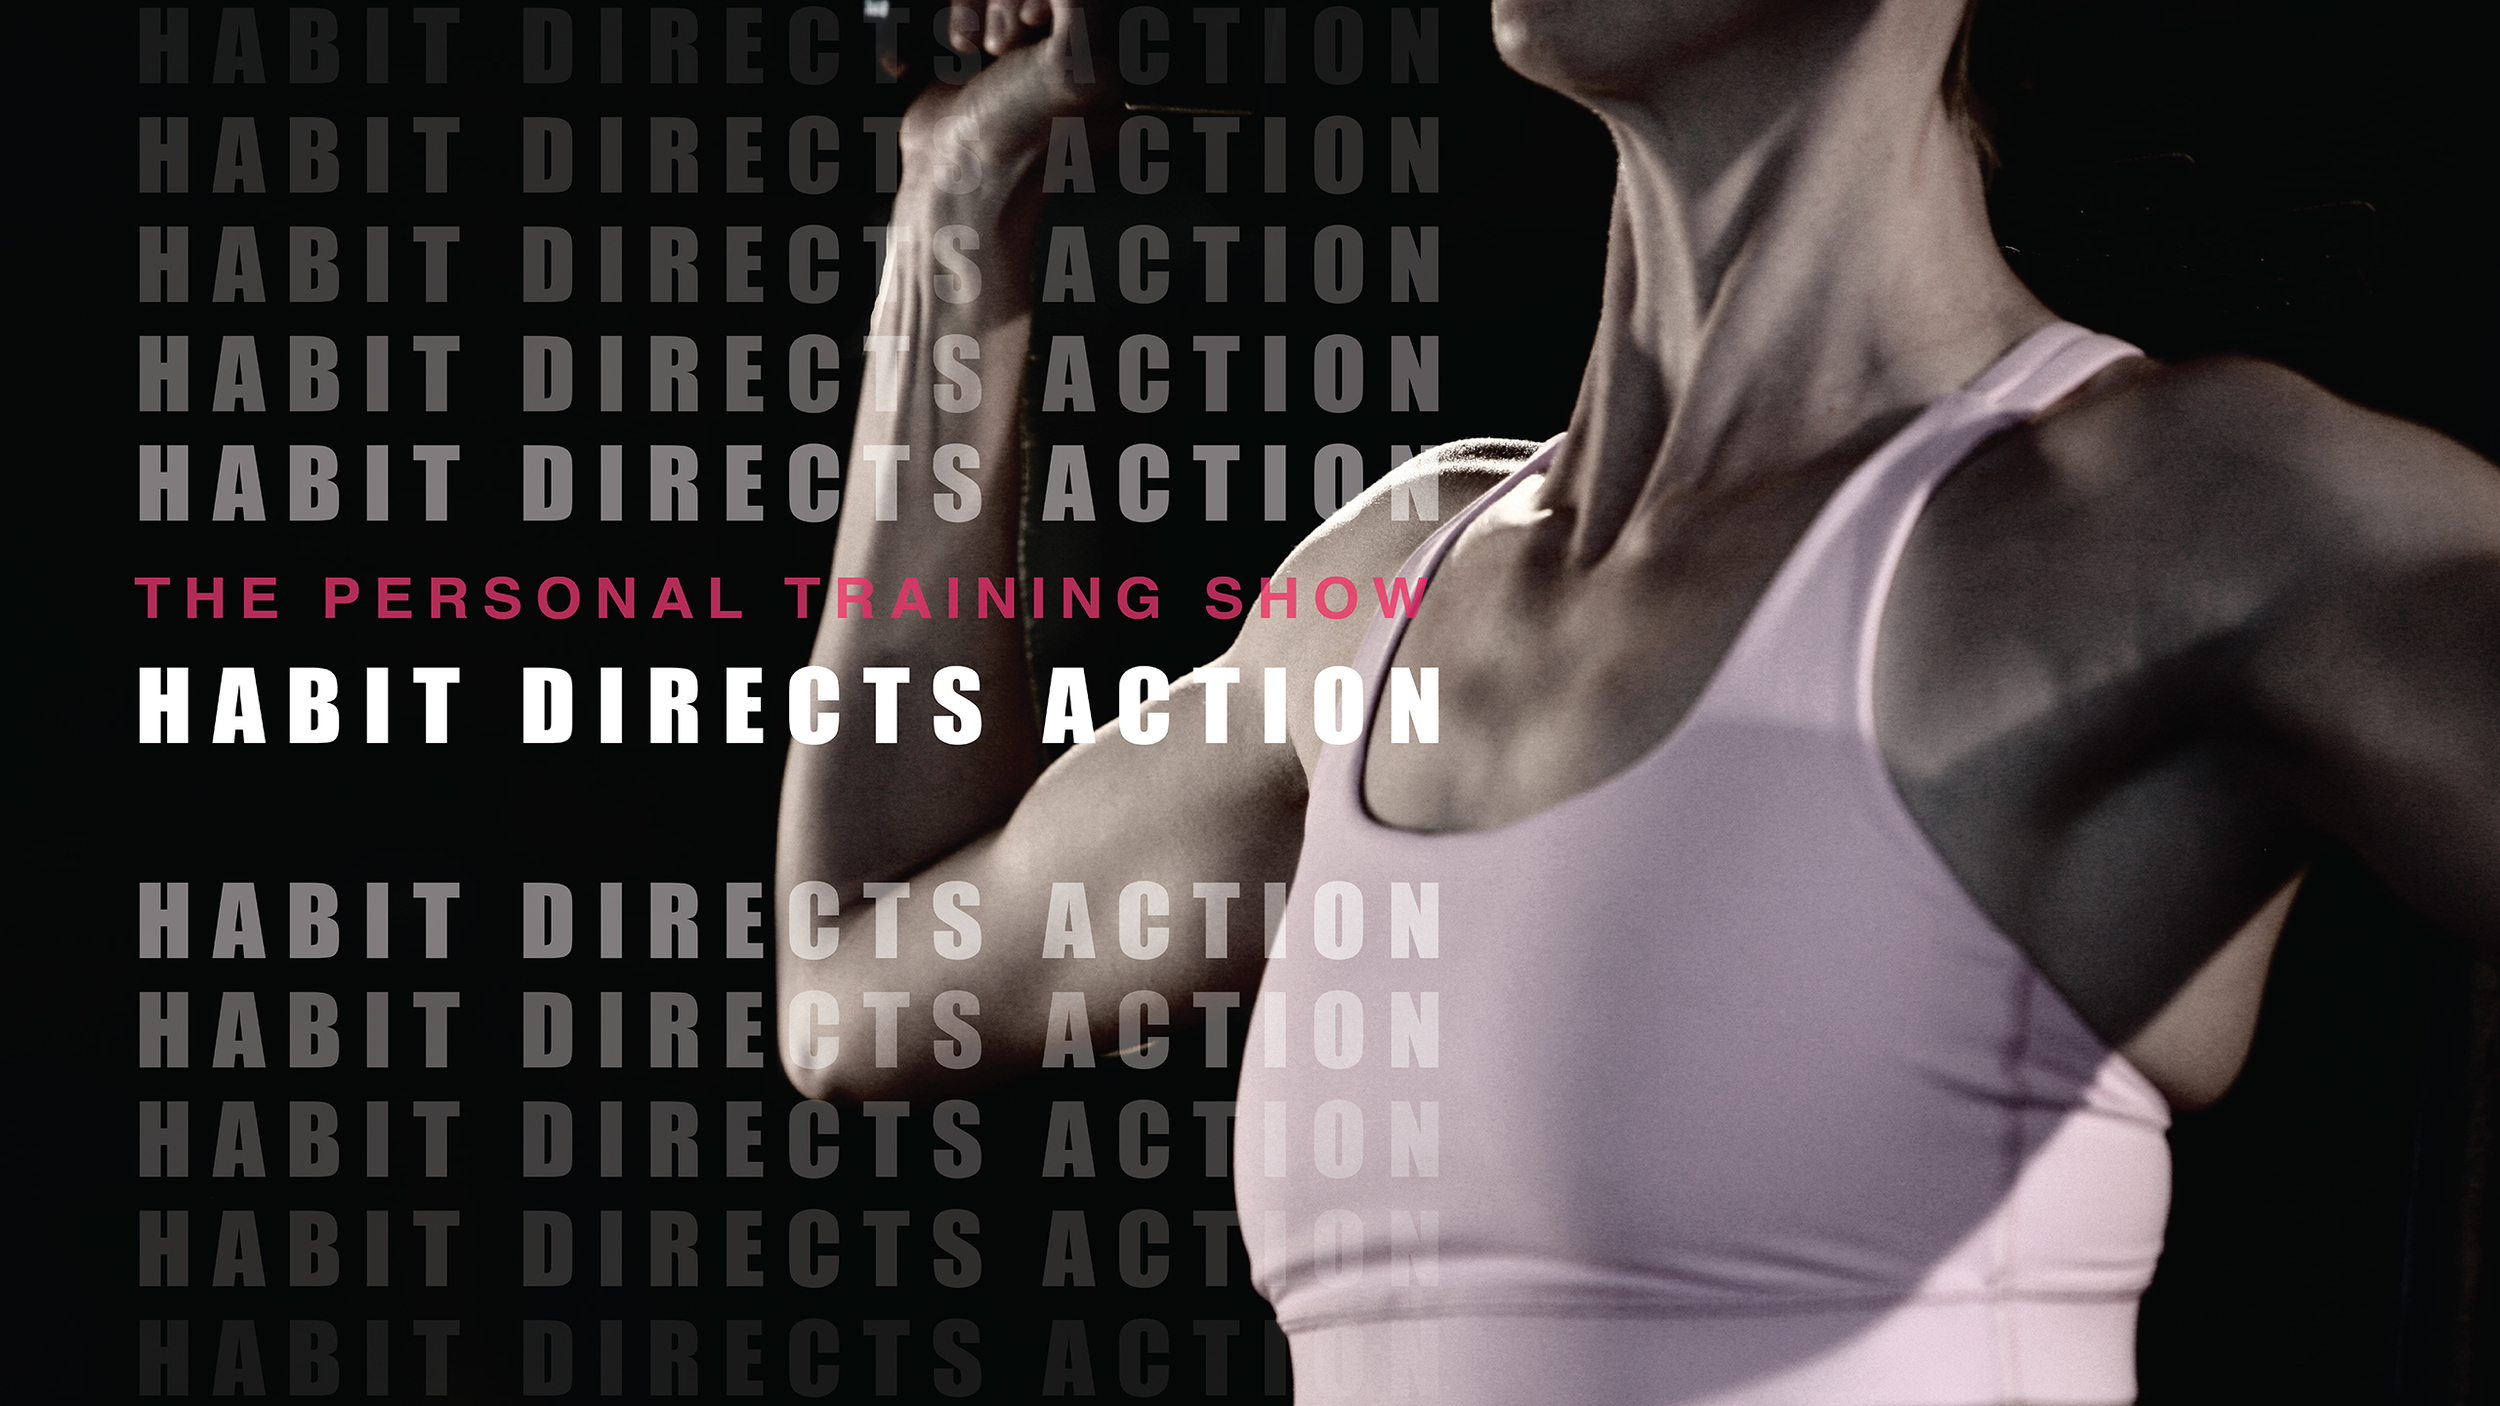 Habit Directs Action